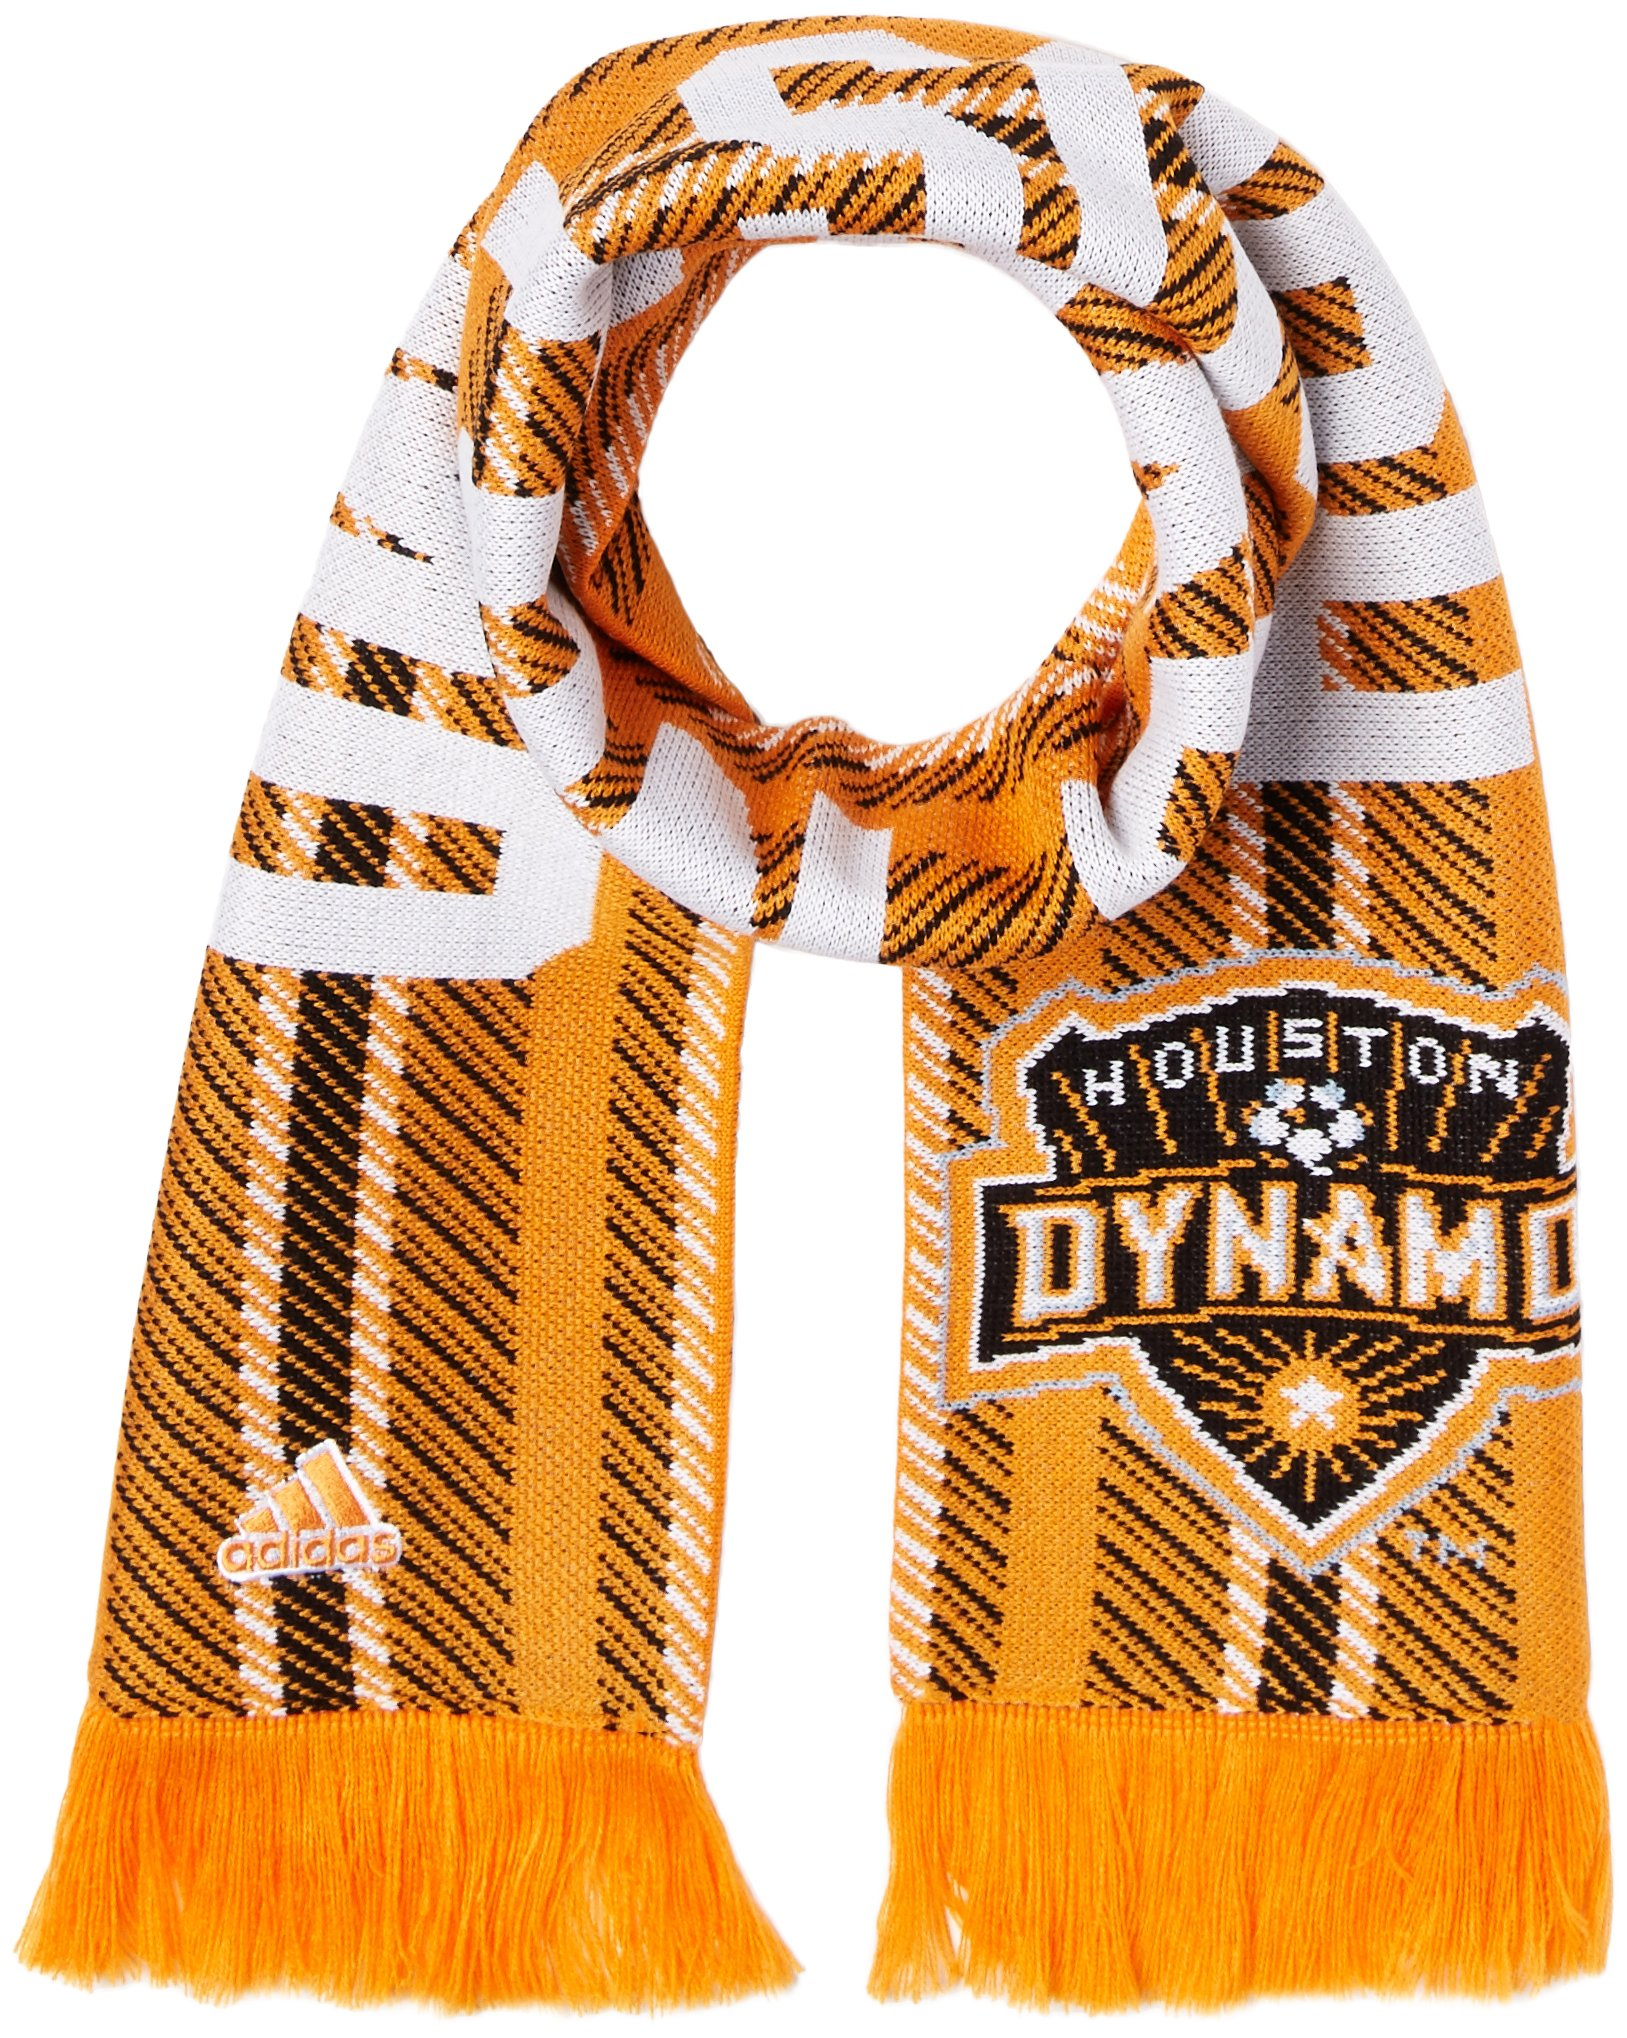 adidas MLS Houston Dynamo Jacquard Scarf with Block Name, One Size, Orange